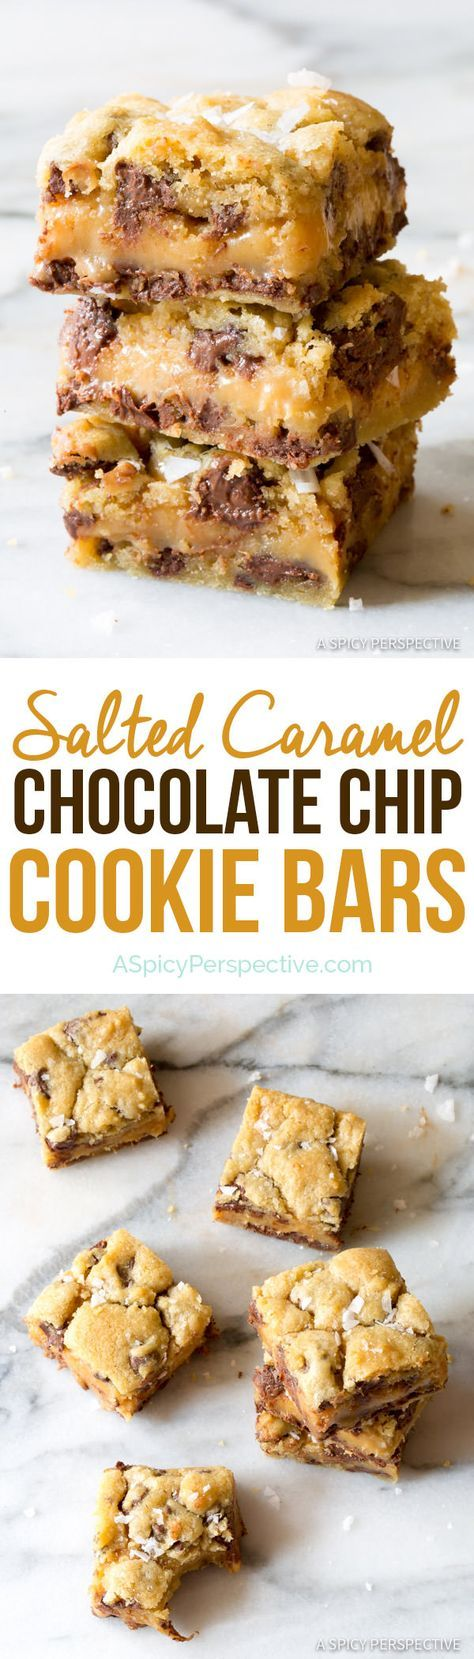 """Irresistible Gooey Salted Caramel Chocolate Chip Cookie Bars 